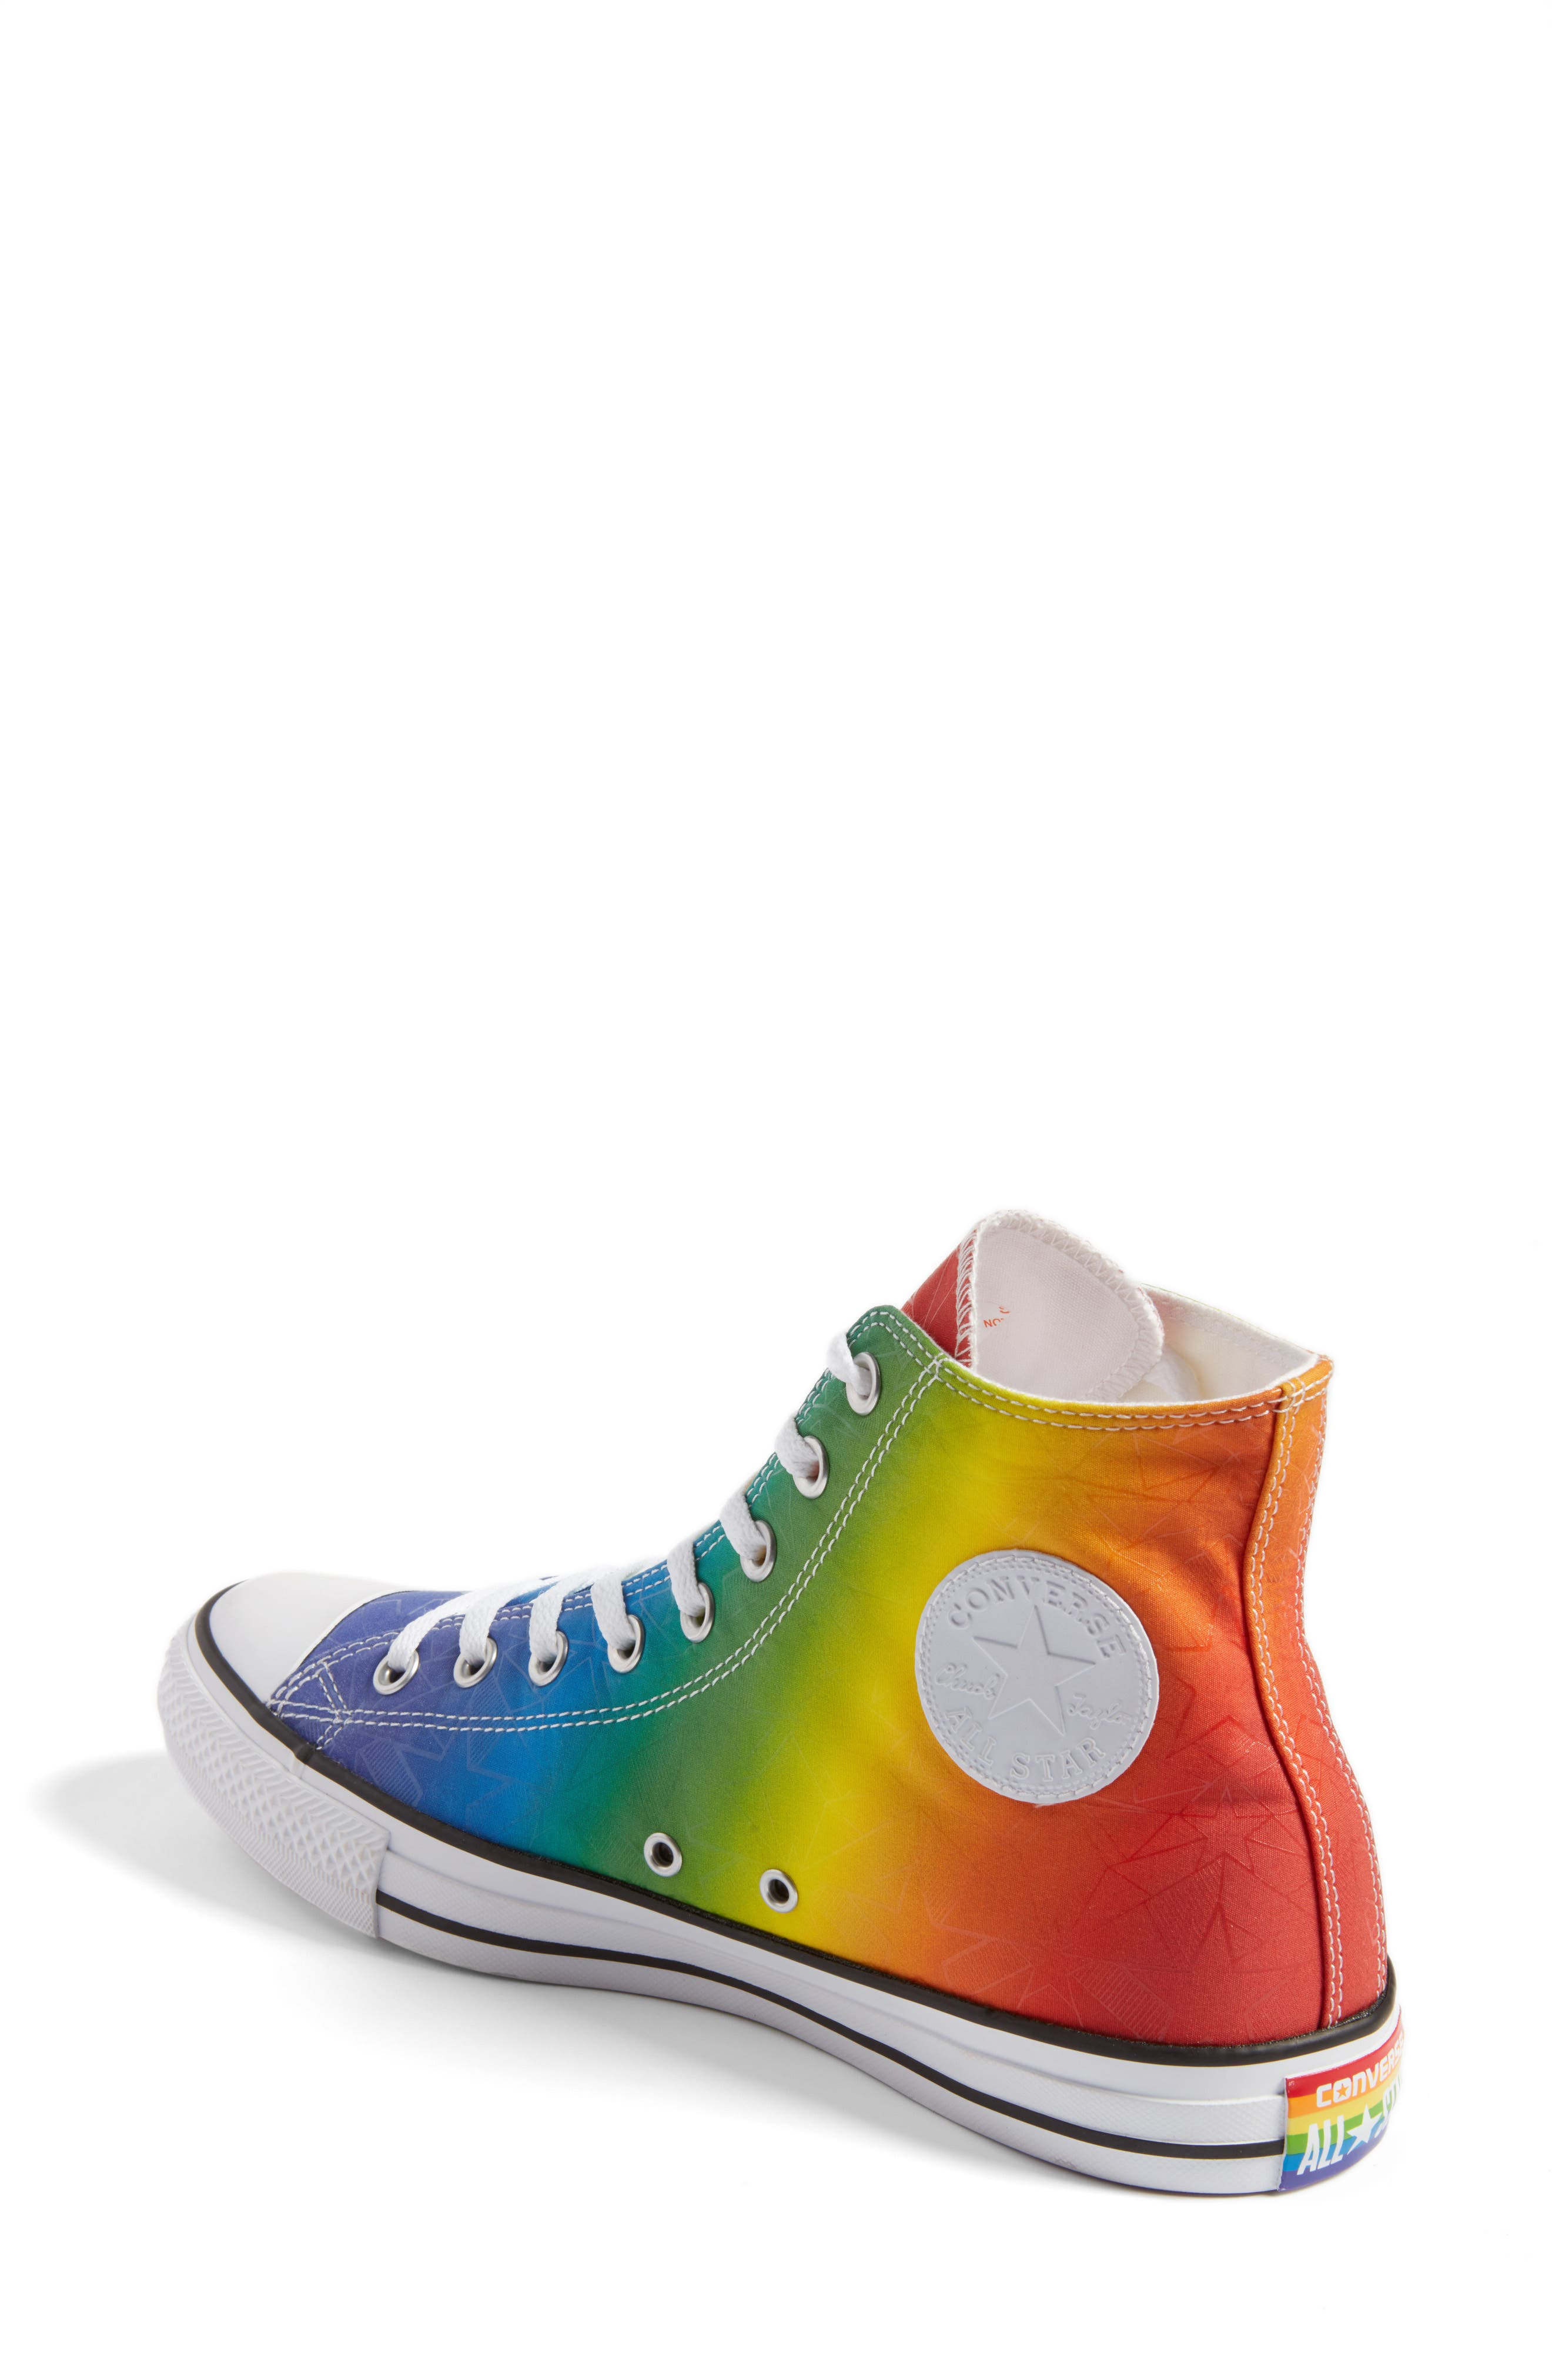 Chuck Taylor<sup>®</sup> All Star<sup>®</sup> Pride High Top Sneaker,                             Alternate thumbnail 2, color,                             500